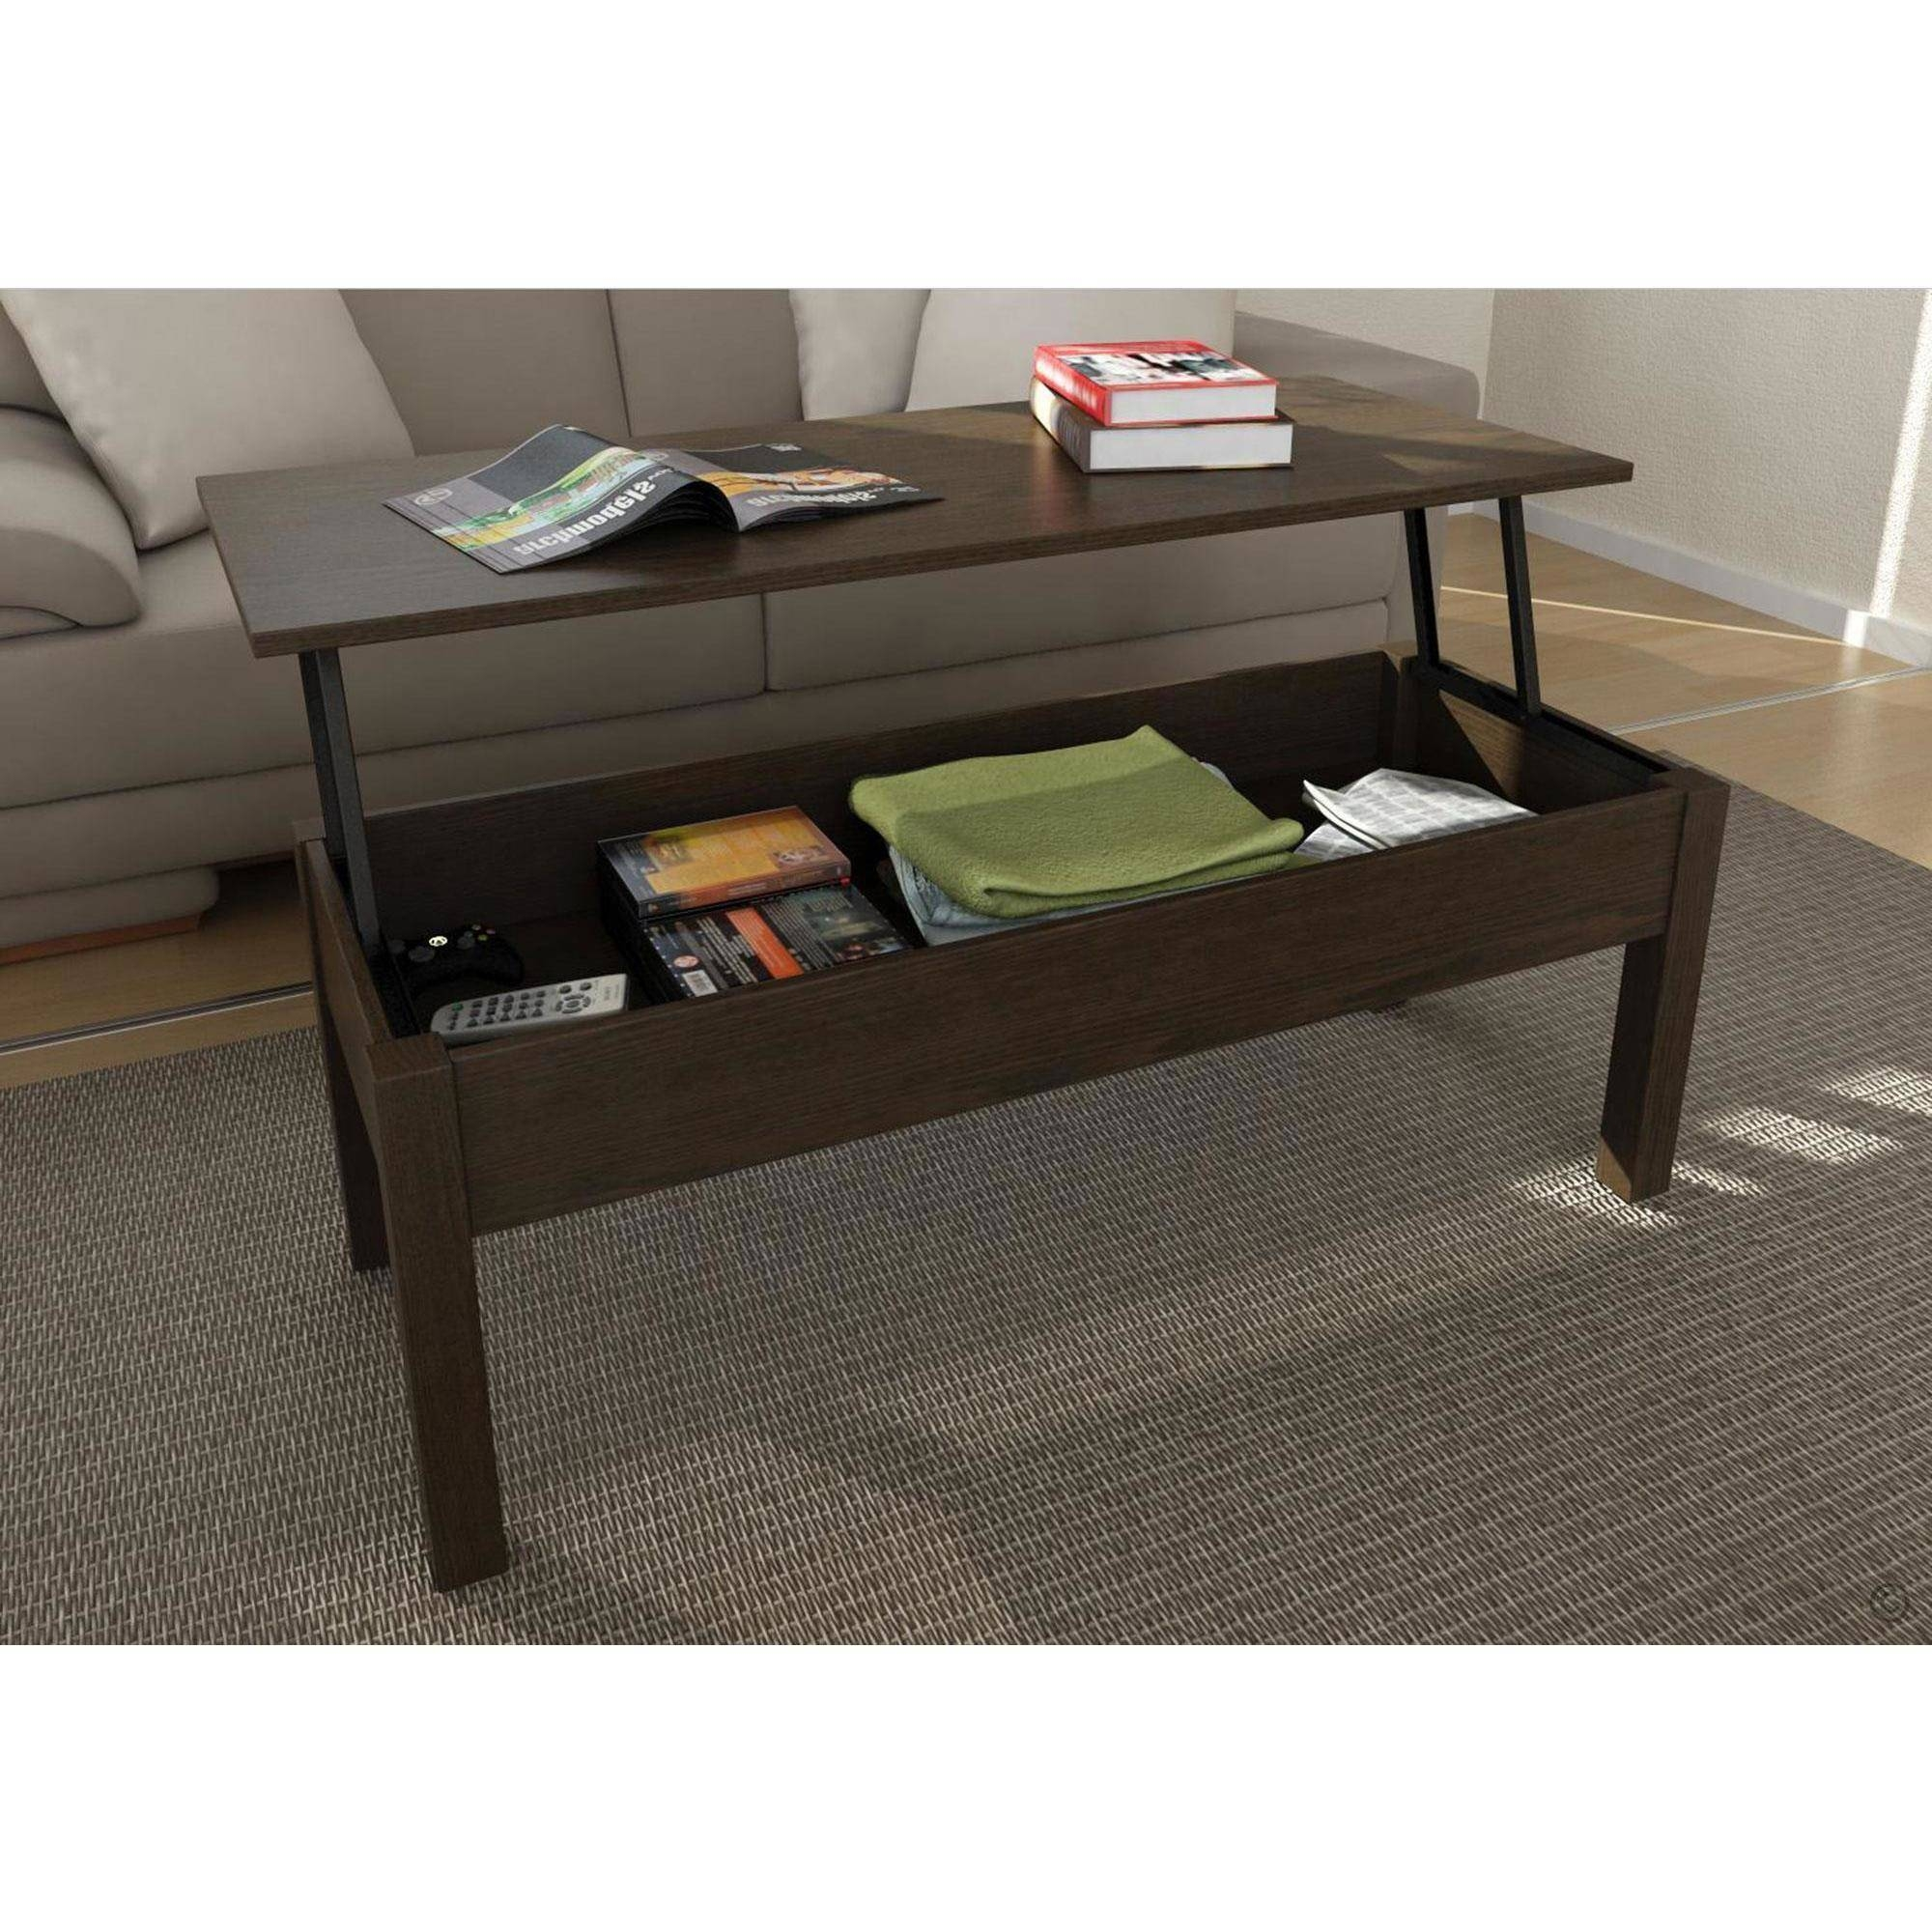 Mainstays Lift-Top Coffee Table, Multiple Colors - Walmart for Lift Up Top Coffee Tables (Image 20 of 30)